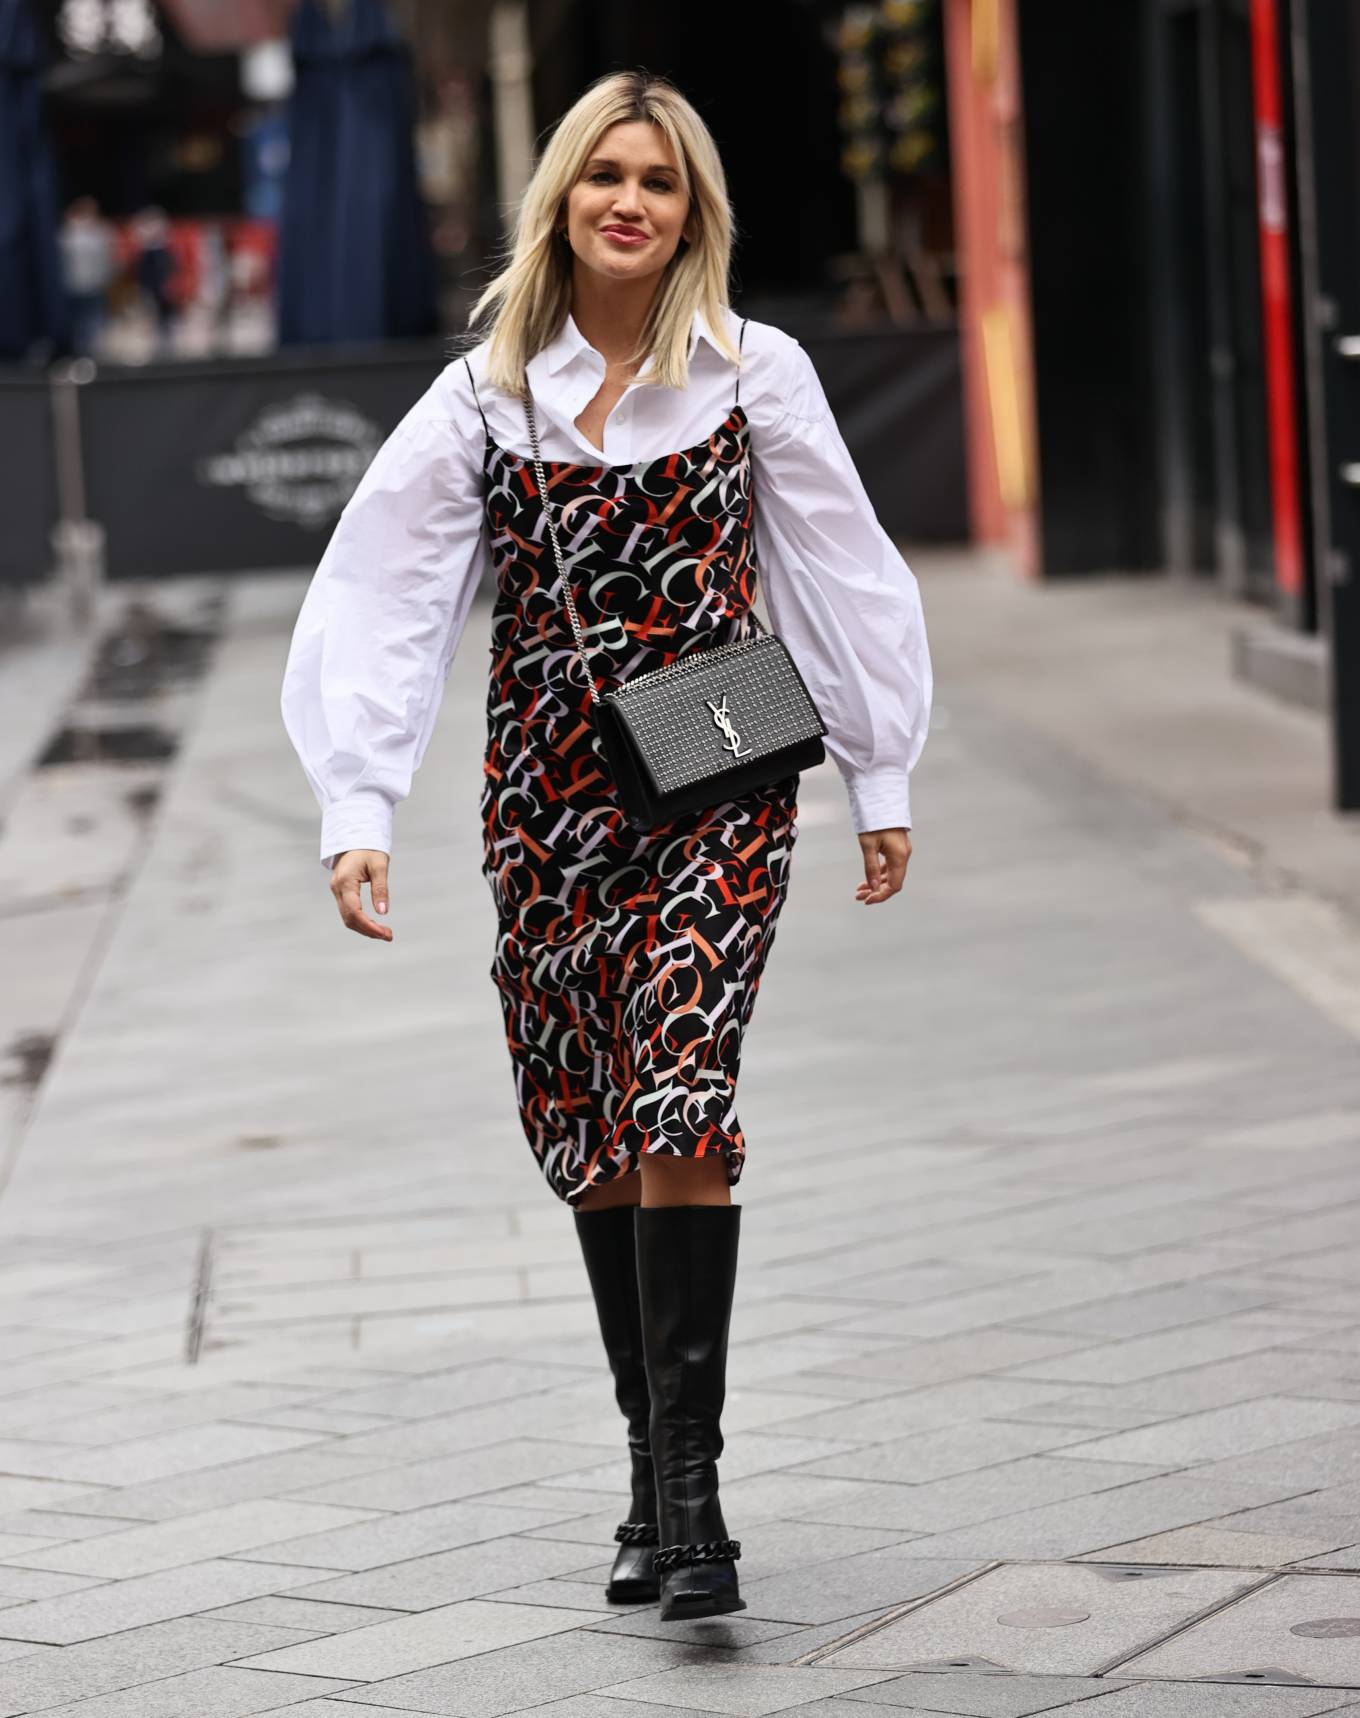 Ashley Roberts - Wears printed dress as she exits Heart radio in London